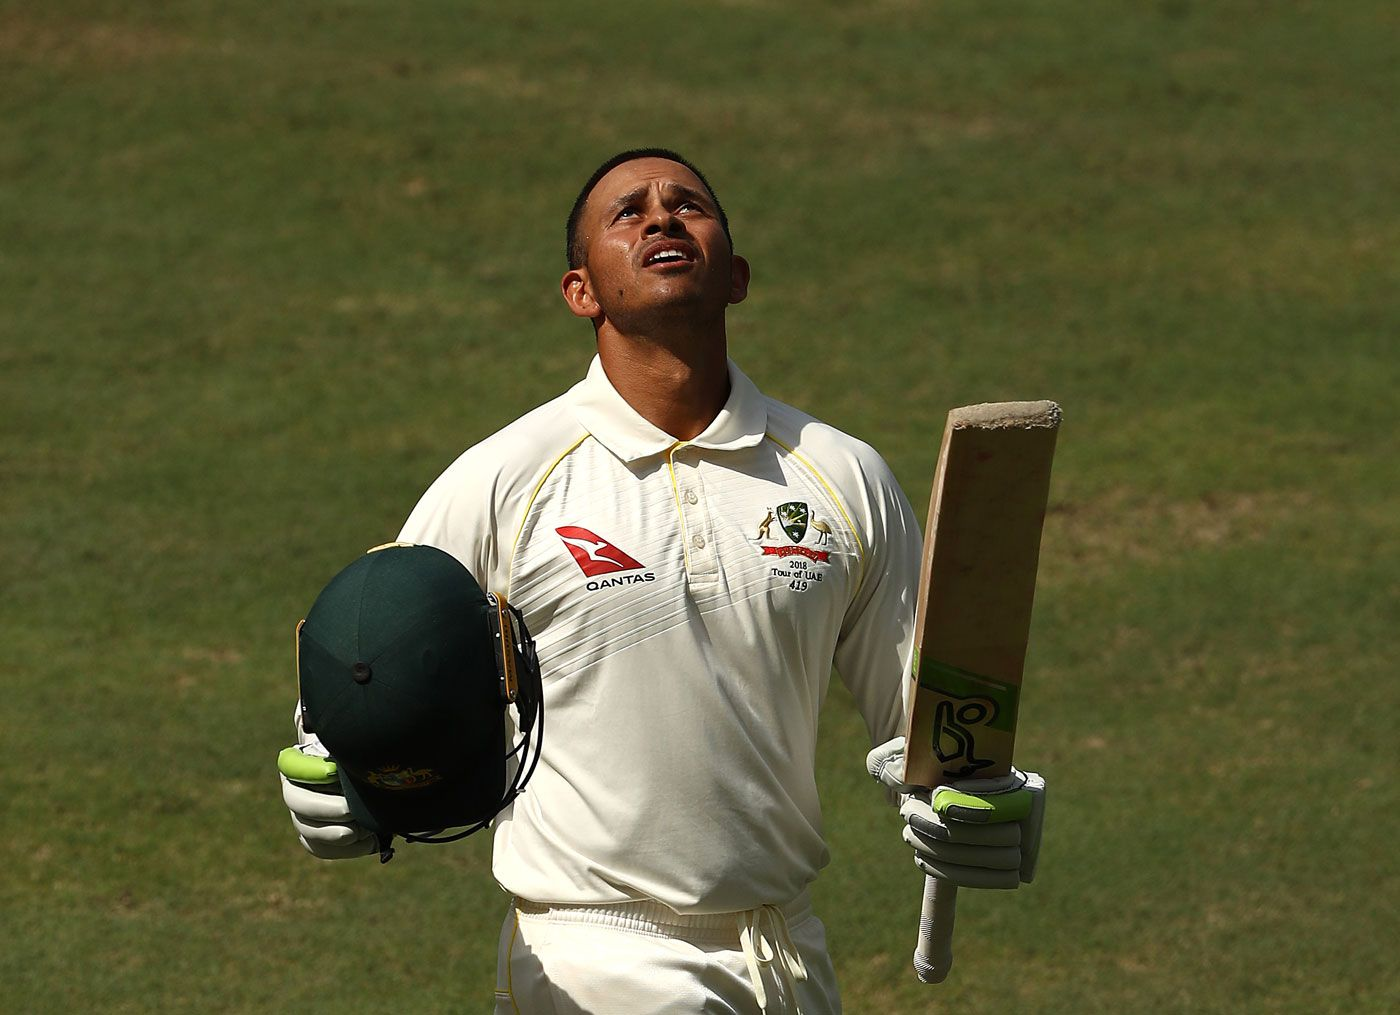 Usman Khawaja's eight-hour, 44-minute 141 helped Australia escape defeat to Pakistan